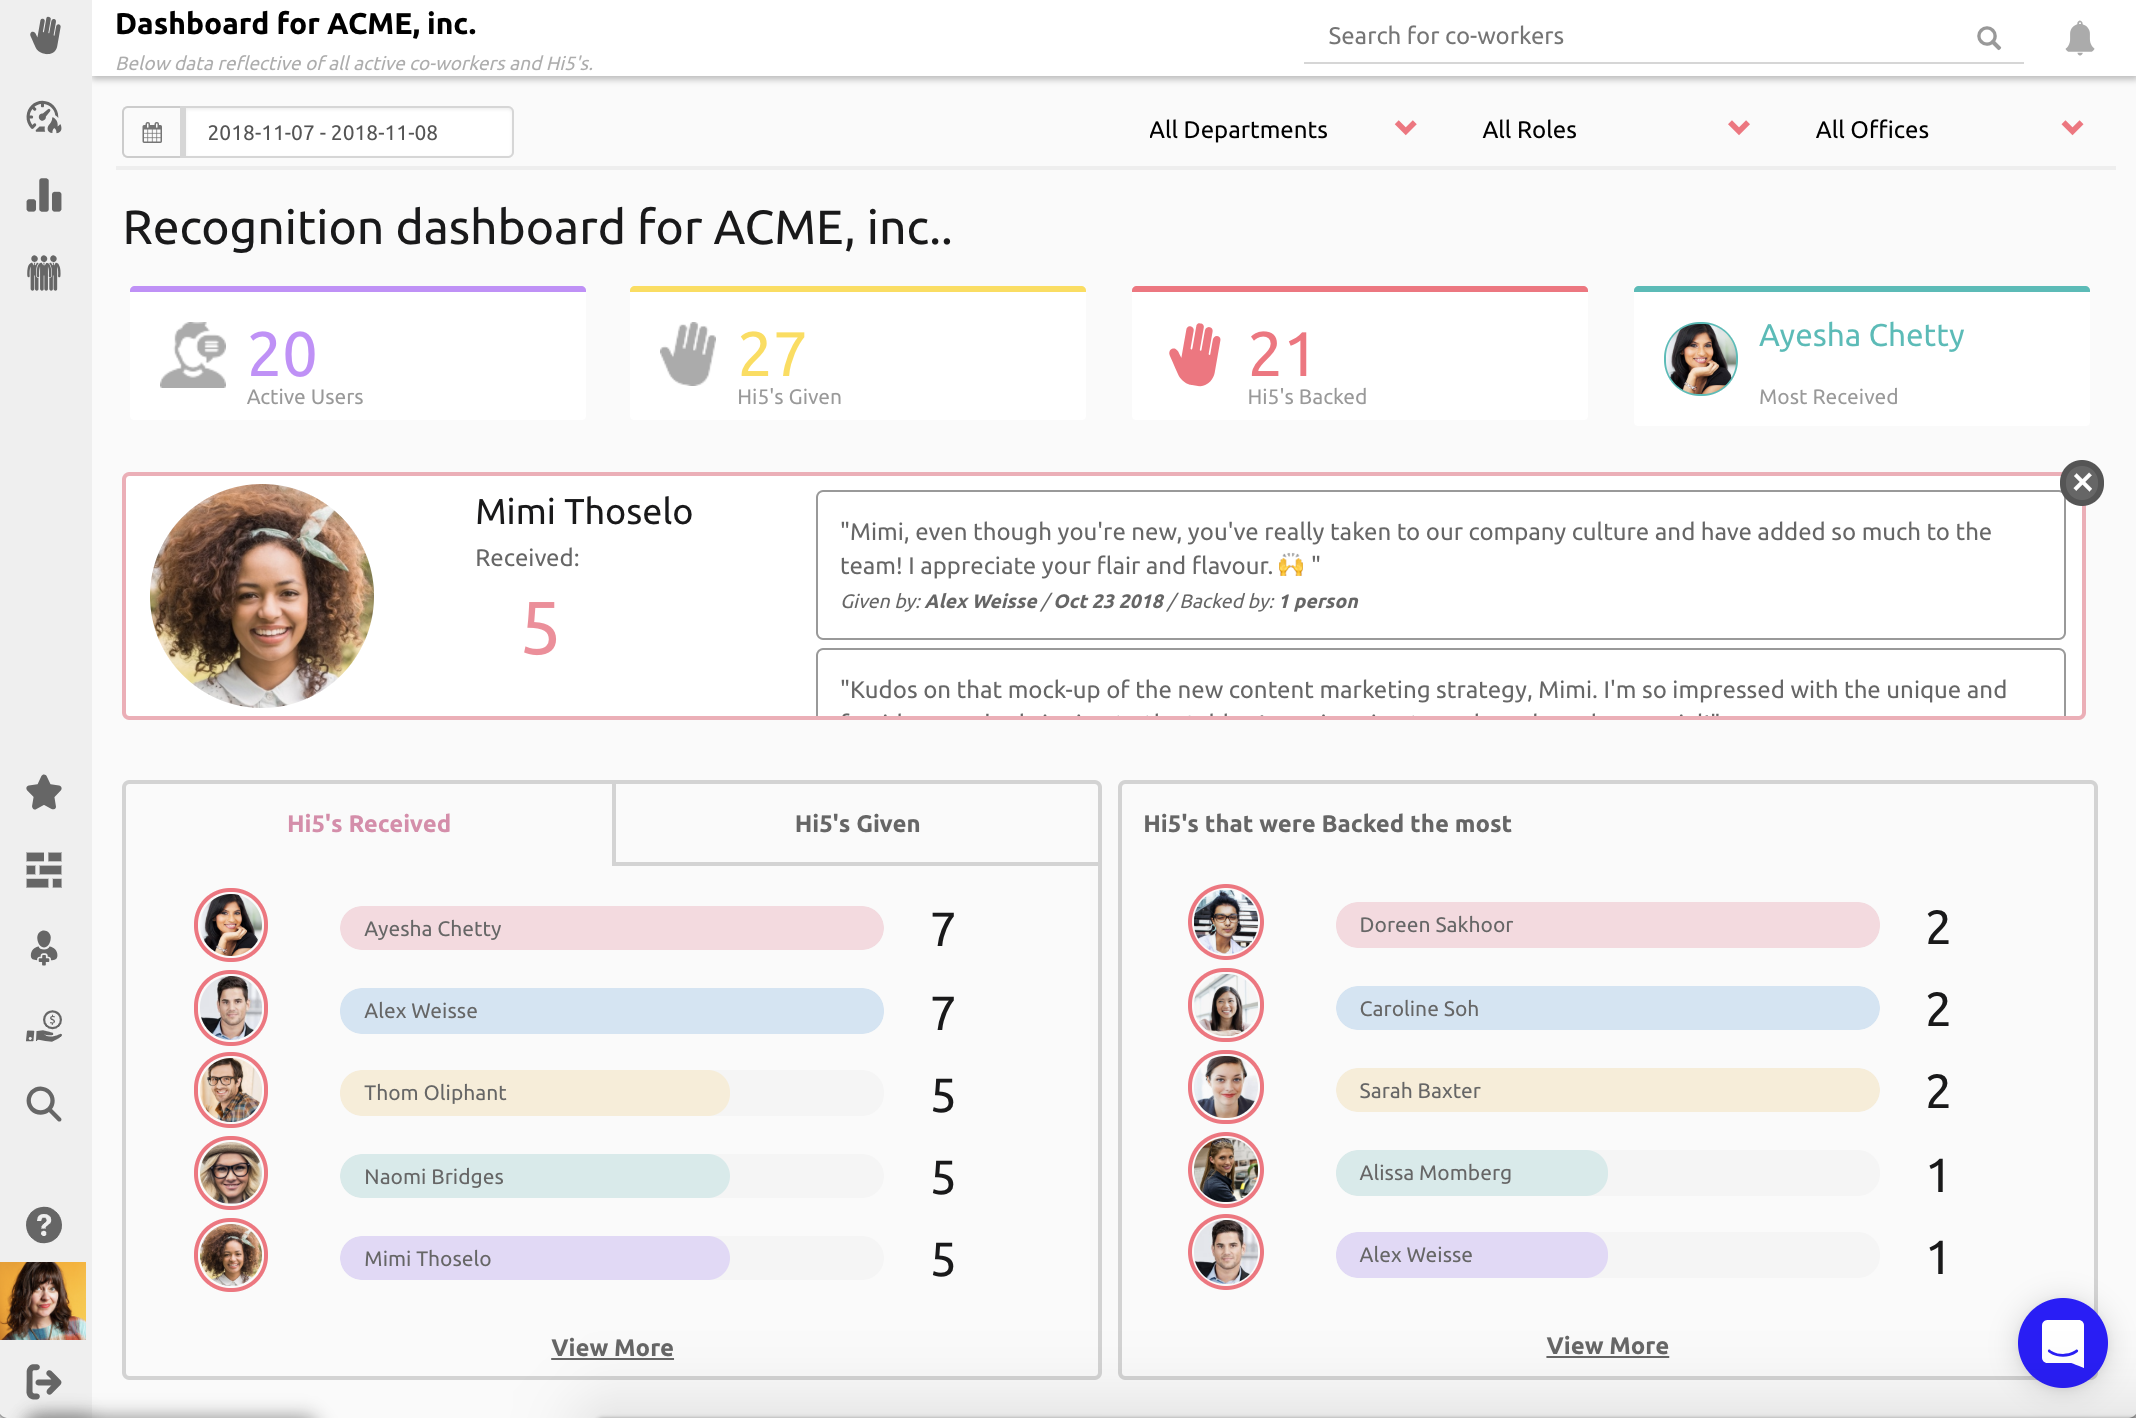 You can easily measure employee engagement & recognition in your company using Hi5's Recognition Dashboard.